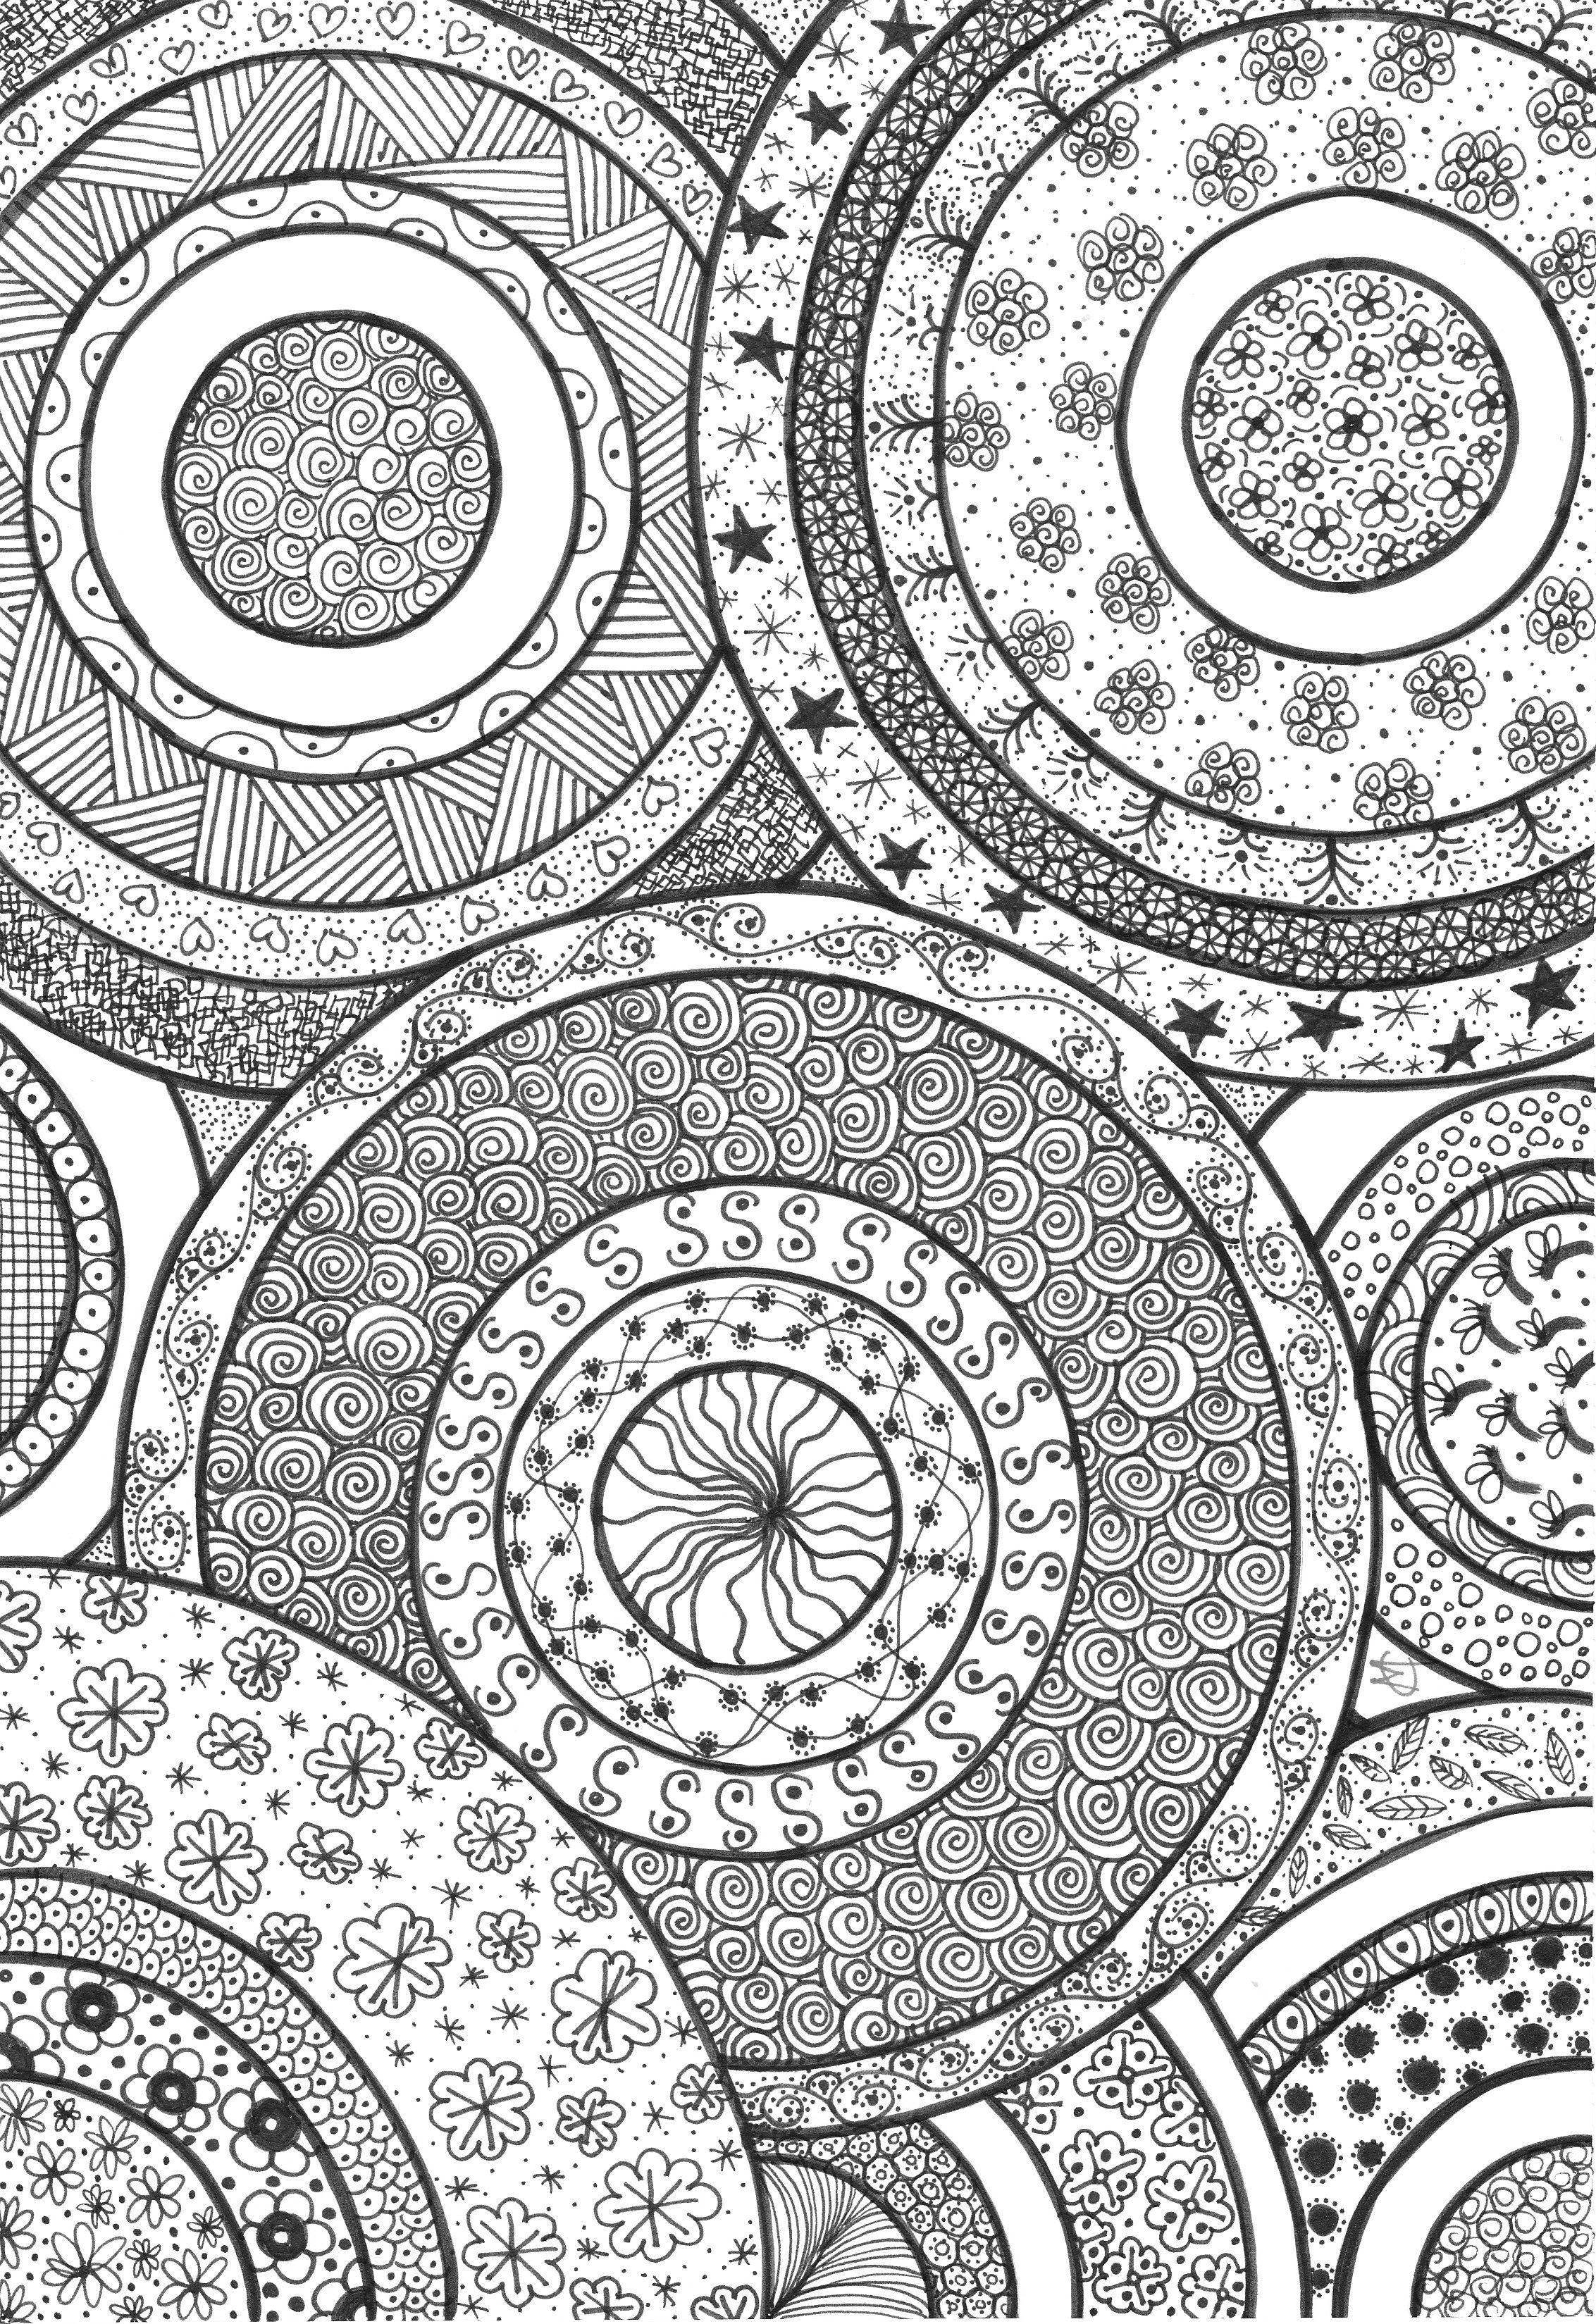 coloring circle patterns geometric coloring pages make them fresh and colorful circle coloring patterns